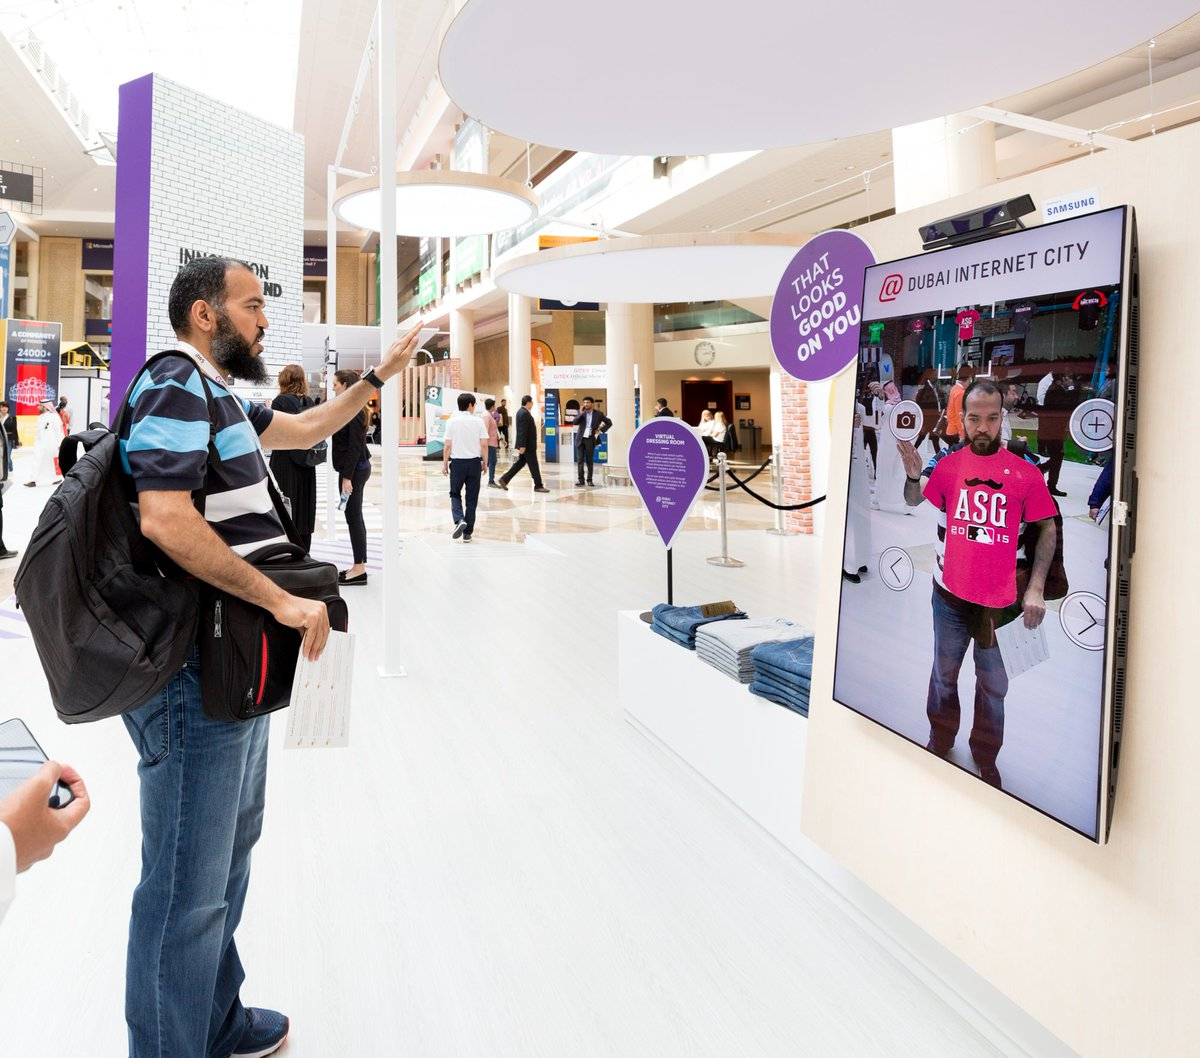 Dubai internet city on twitter 4 more days left to experience dubai internet city on twitter 4 more days left to experience thesmarterjourney at gitextechweek visit dic at concourse 2 try cutting edge tech for solutioingenieria Choice Image